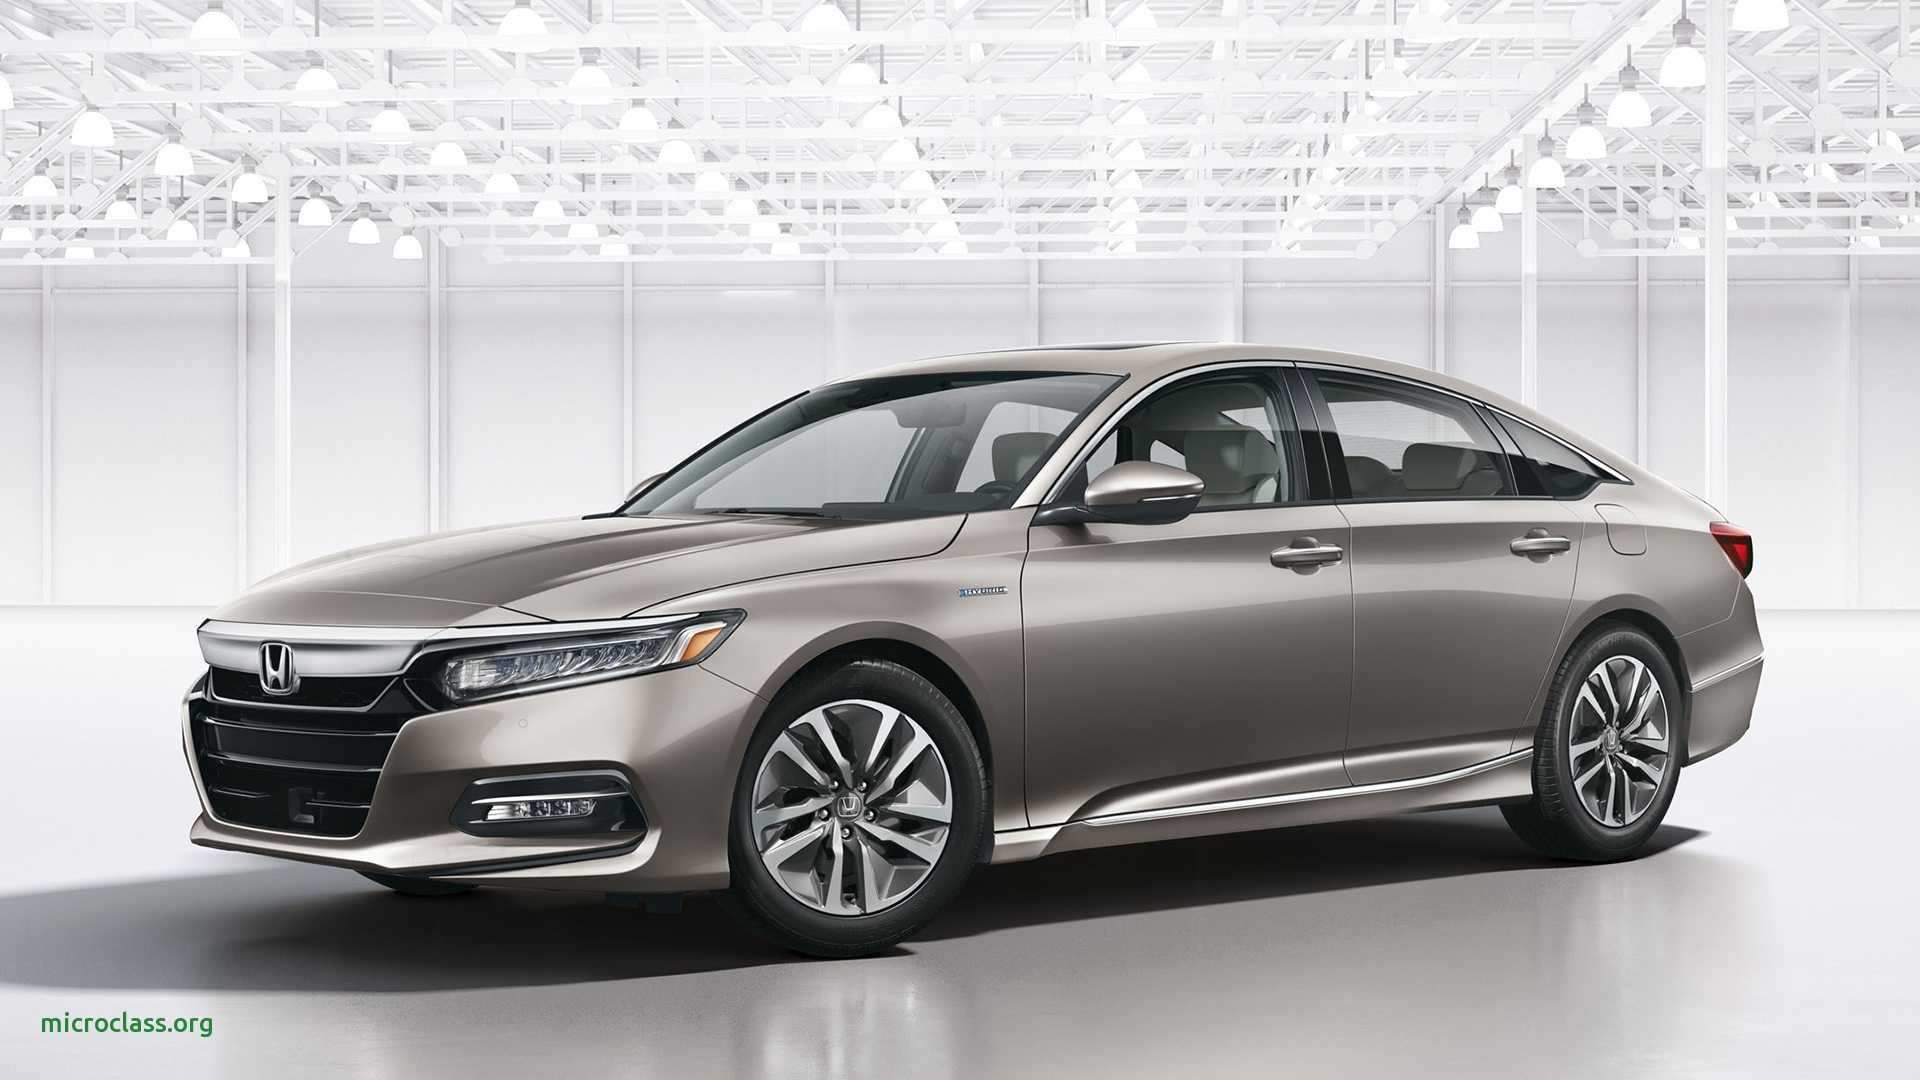 31 New New Honda Accord Hybrid 2019 Price And Release Date Ratings for New Honda Accord Hybrid 2019 Price And Release Date